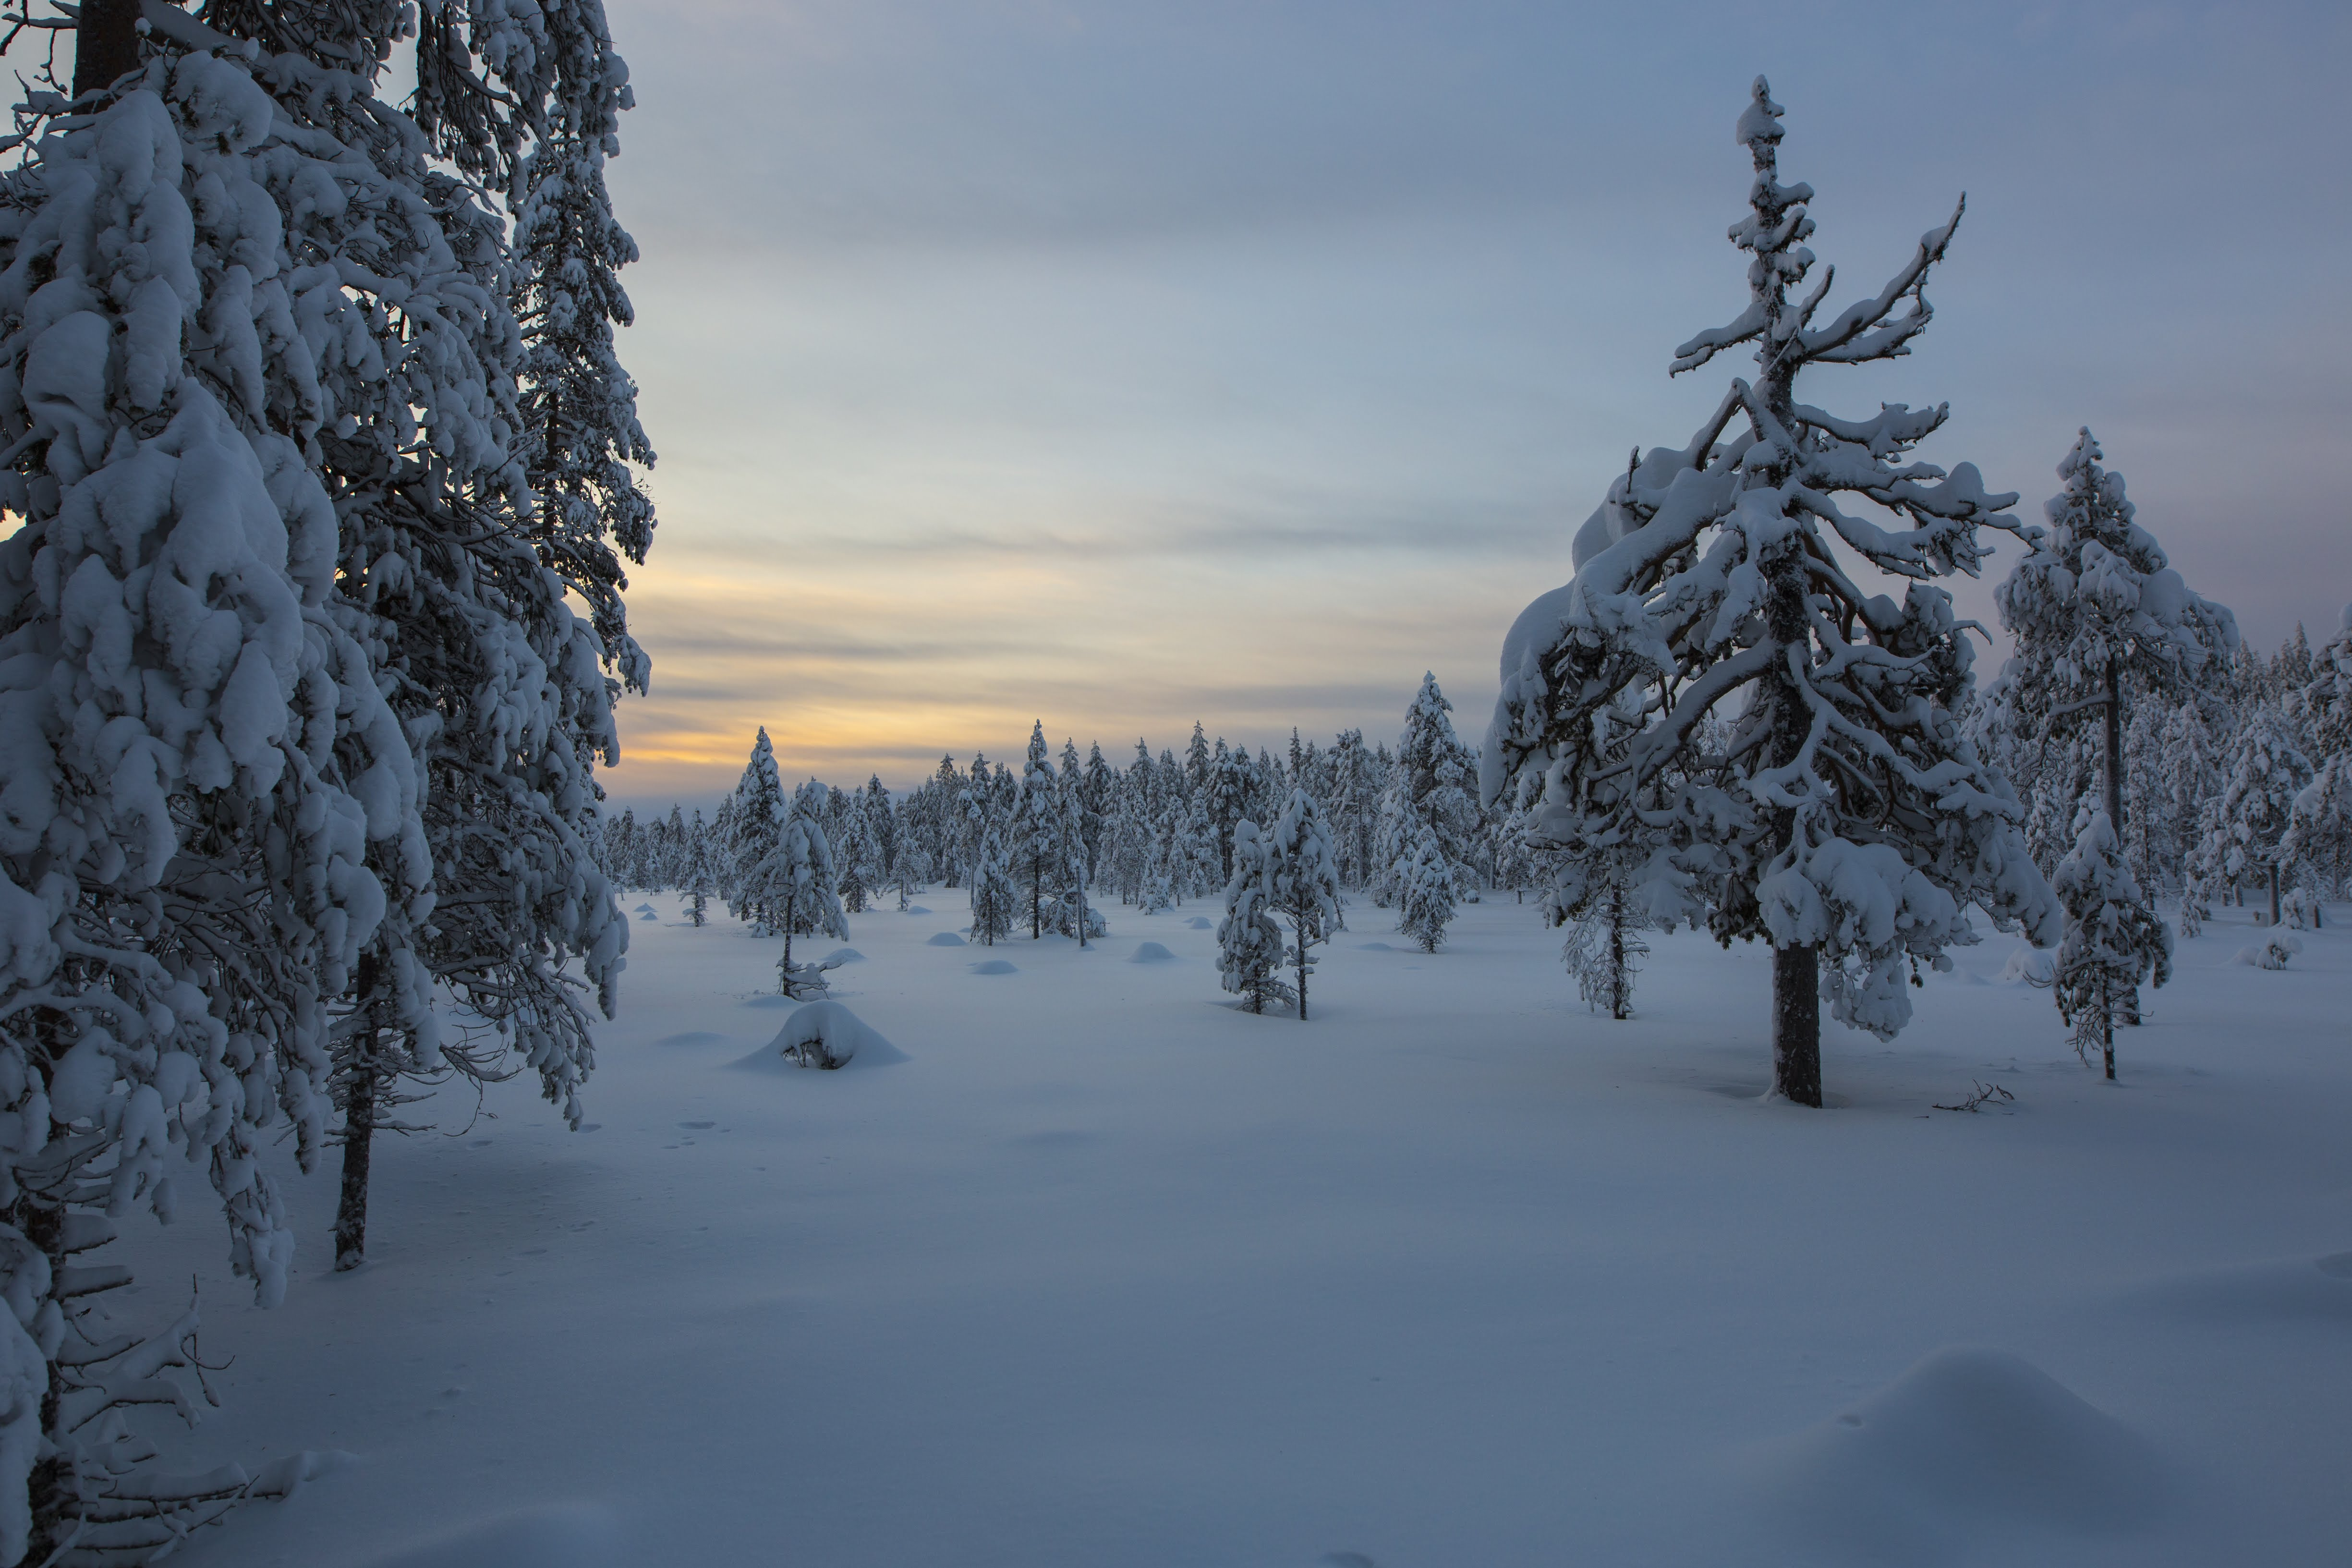 INFECTION CONTROL RULES FOR HAFJELL SUMMER 2020